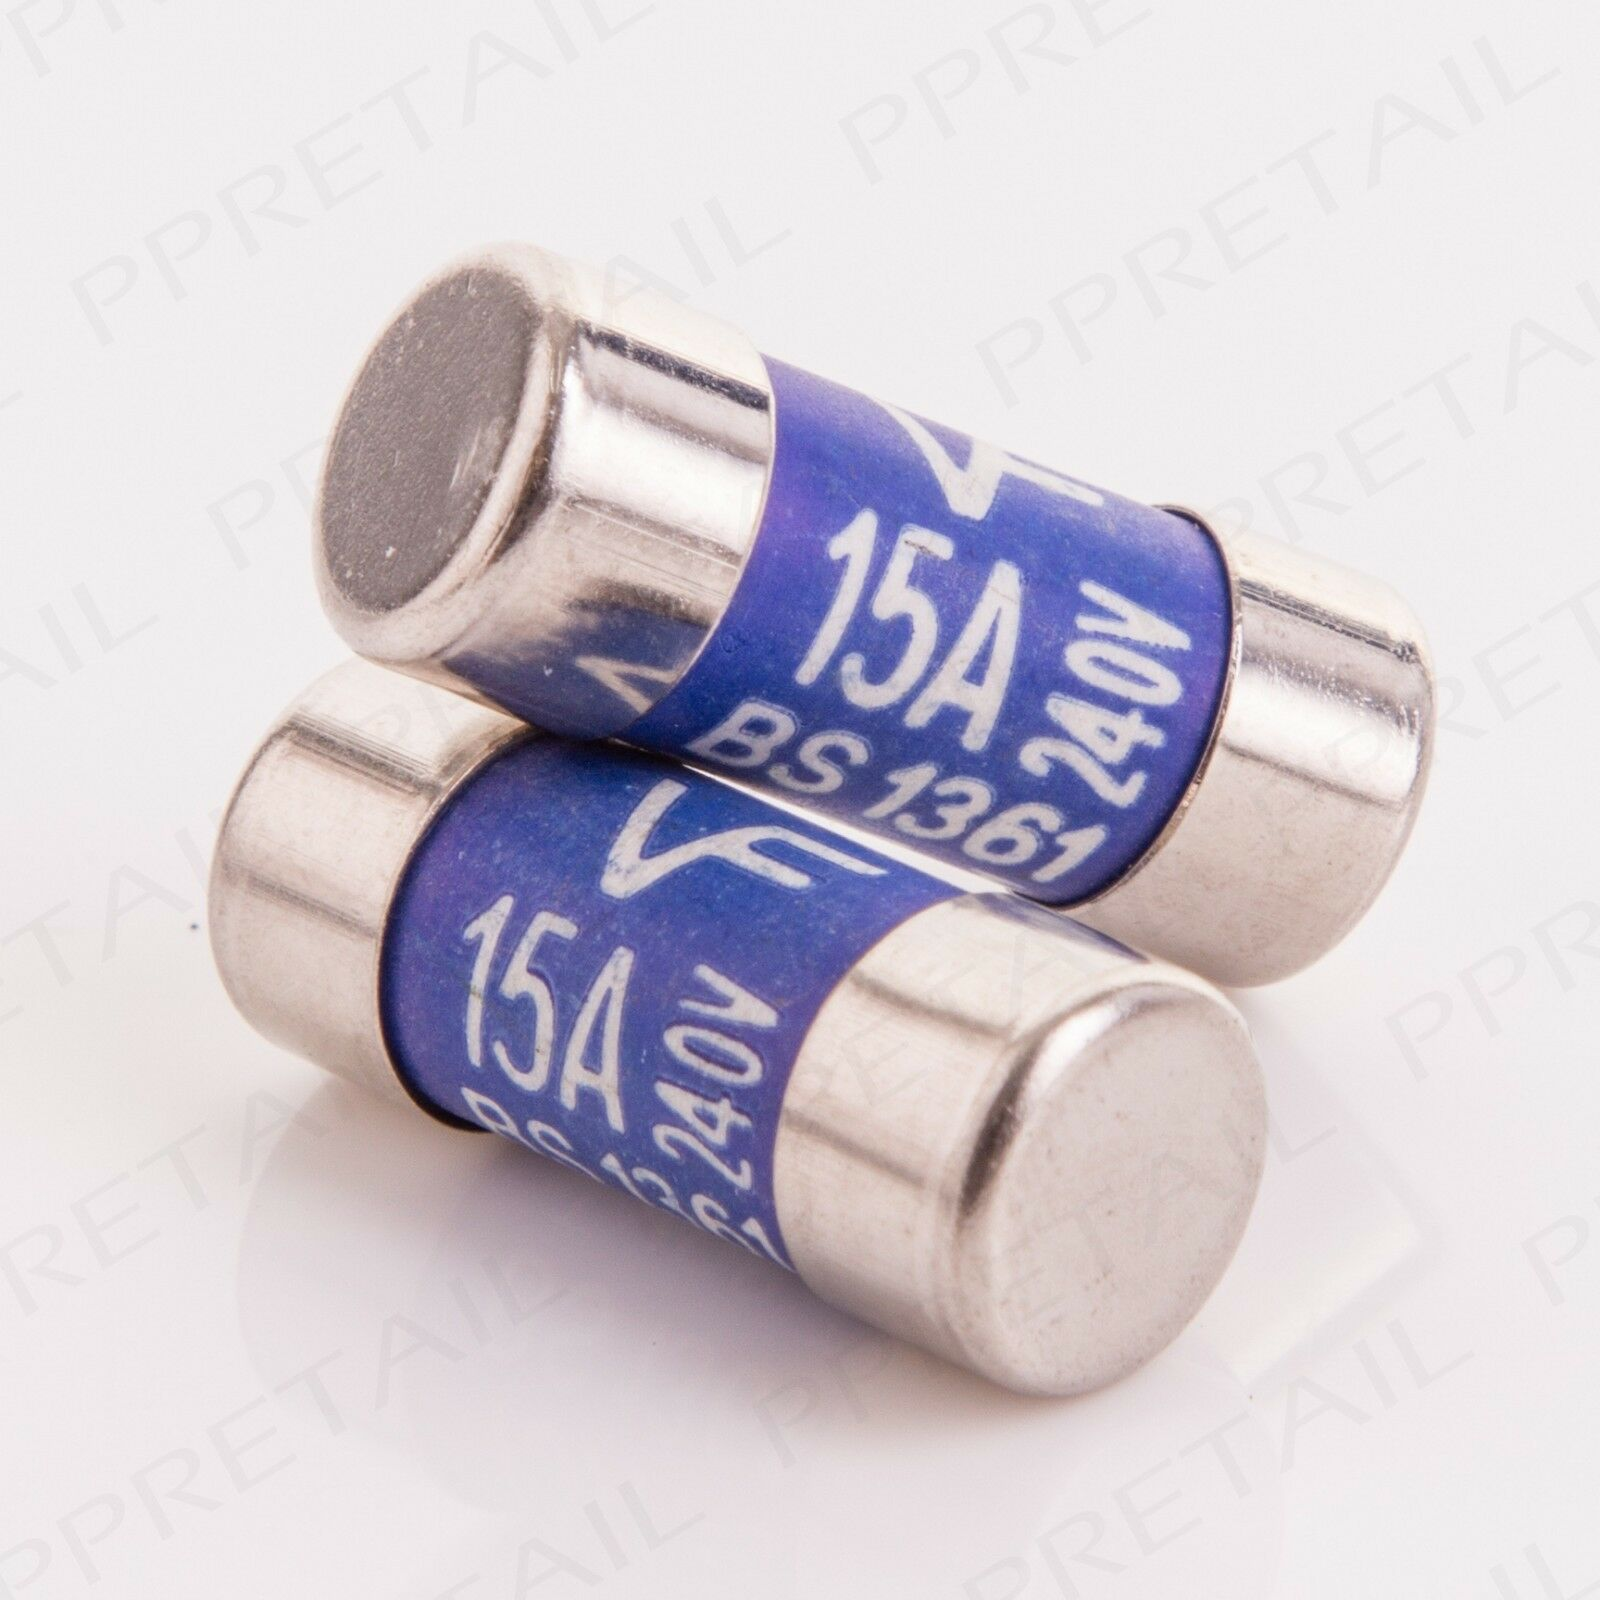 2 X Replacement 15 Amp Fuses 240v Blown Fuse Box Heater Circuit Has Repair Parts 1 Of 2free Shipping See More